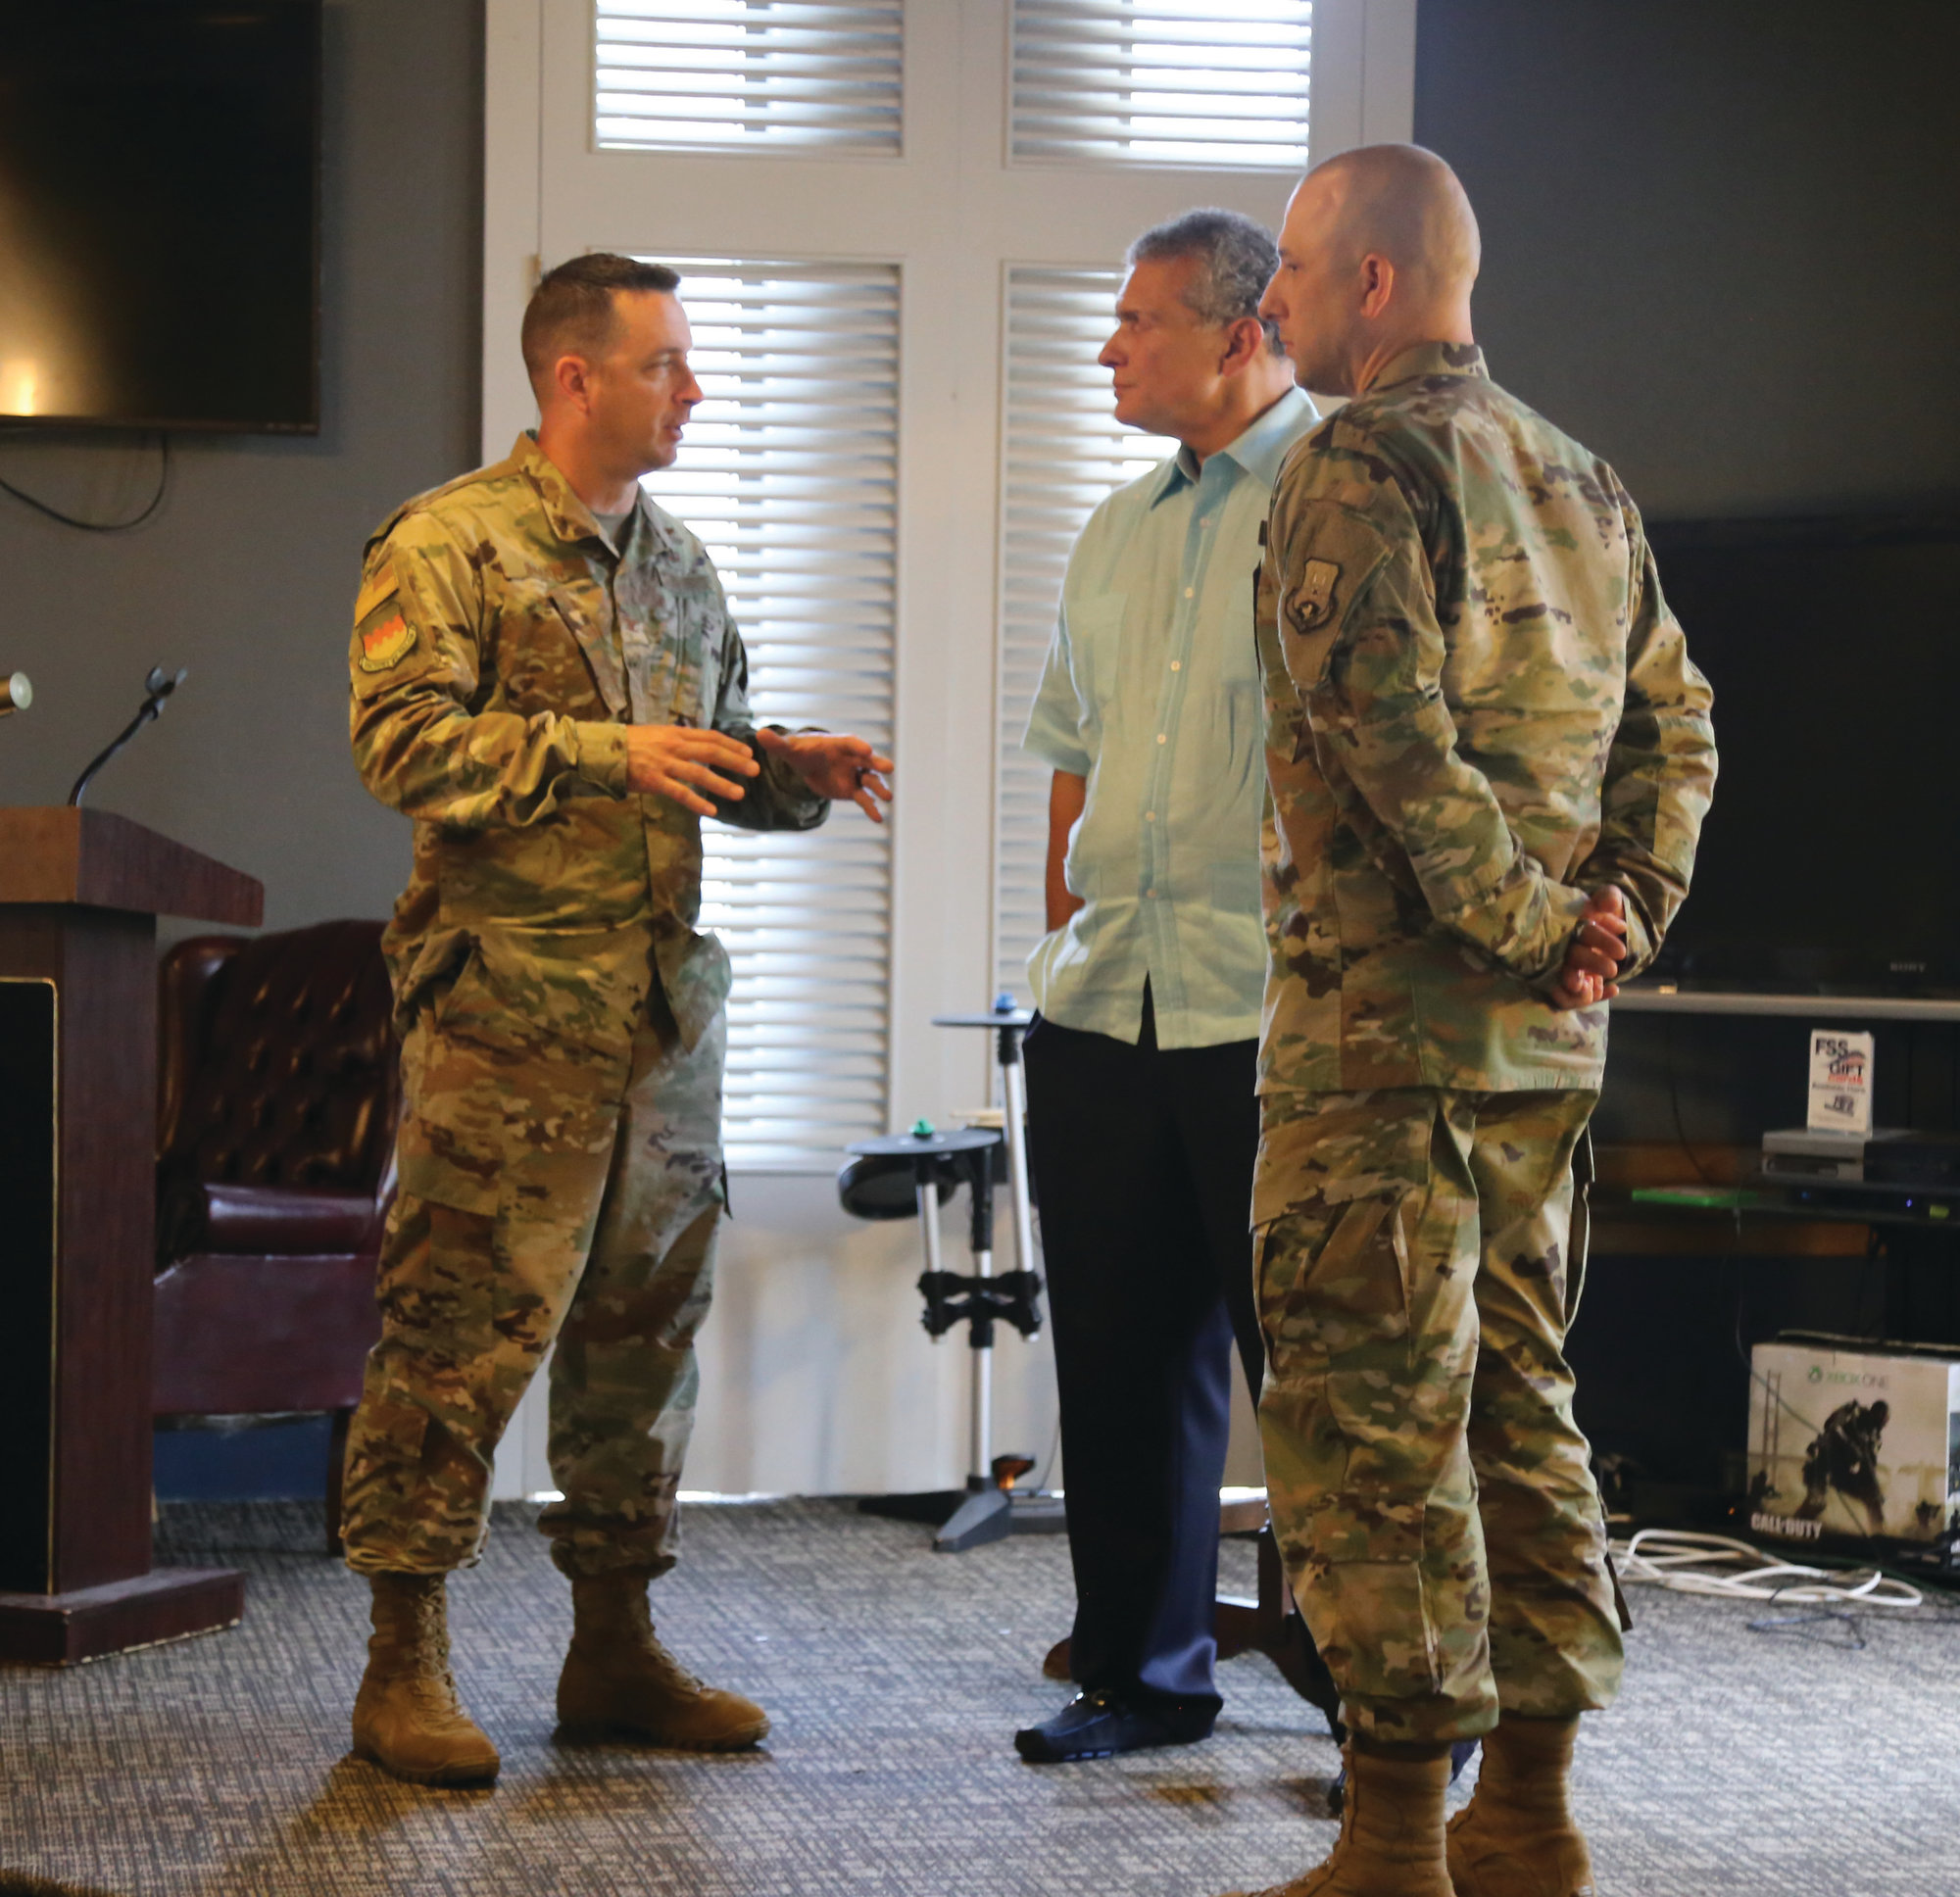 University of South Carolina head basketball coach Frank Martin, center, shares a moment with Senior Master Sgt. Christopher Harvey, right, and Col. Ryan Inman, left, following his speech on leadership at Shaw Air Force Base on Wednesday.